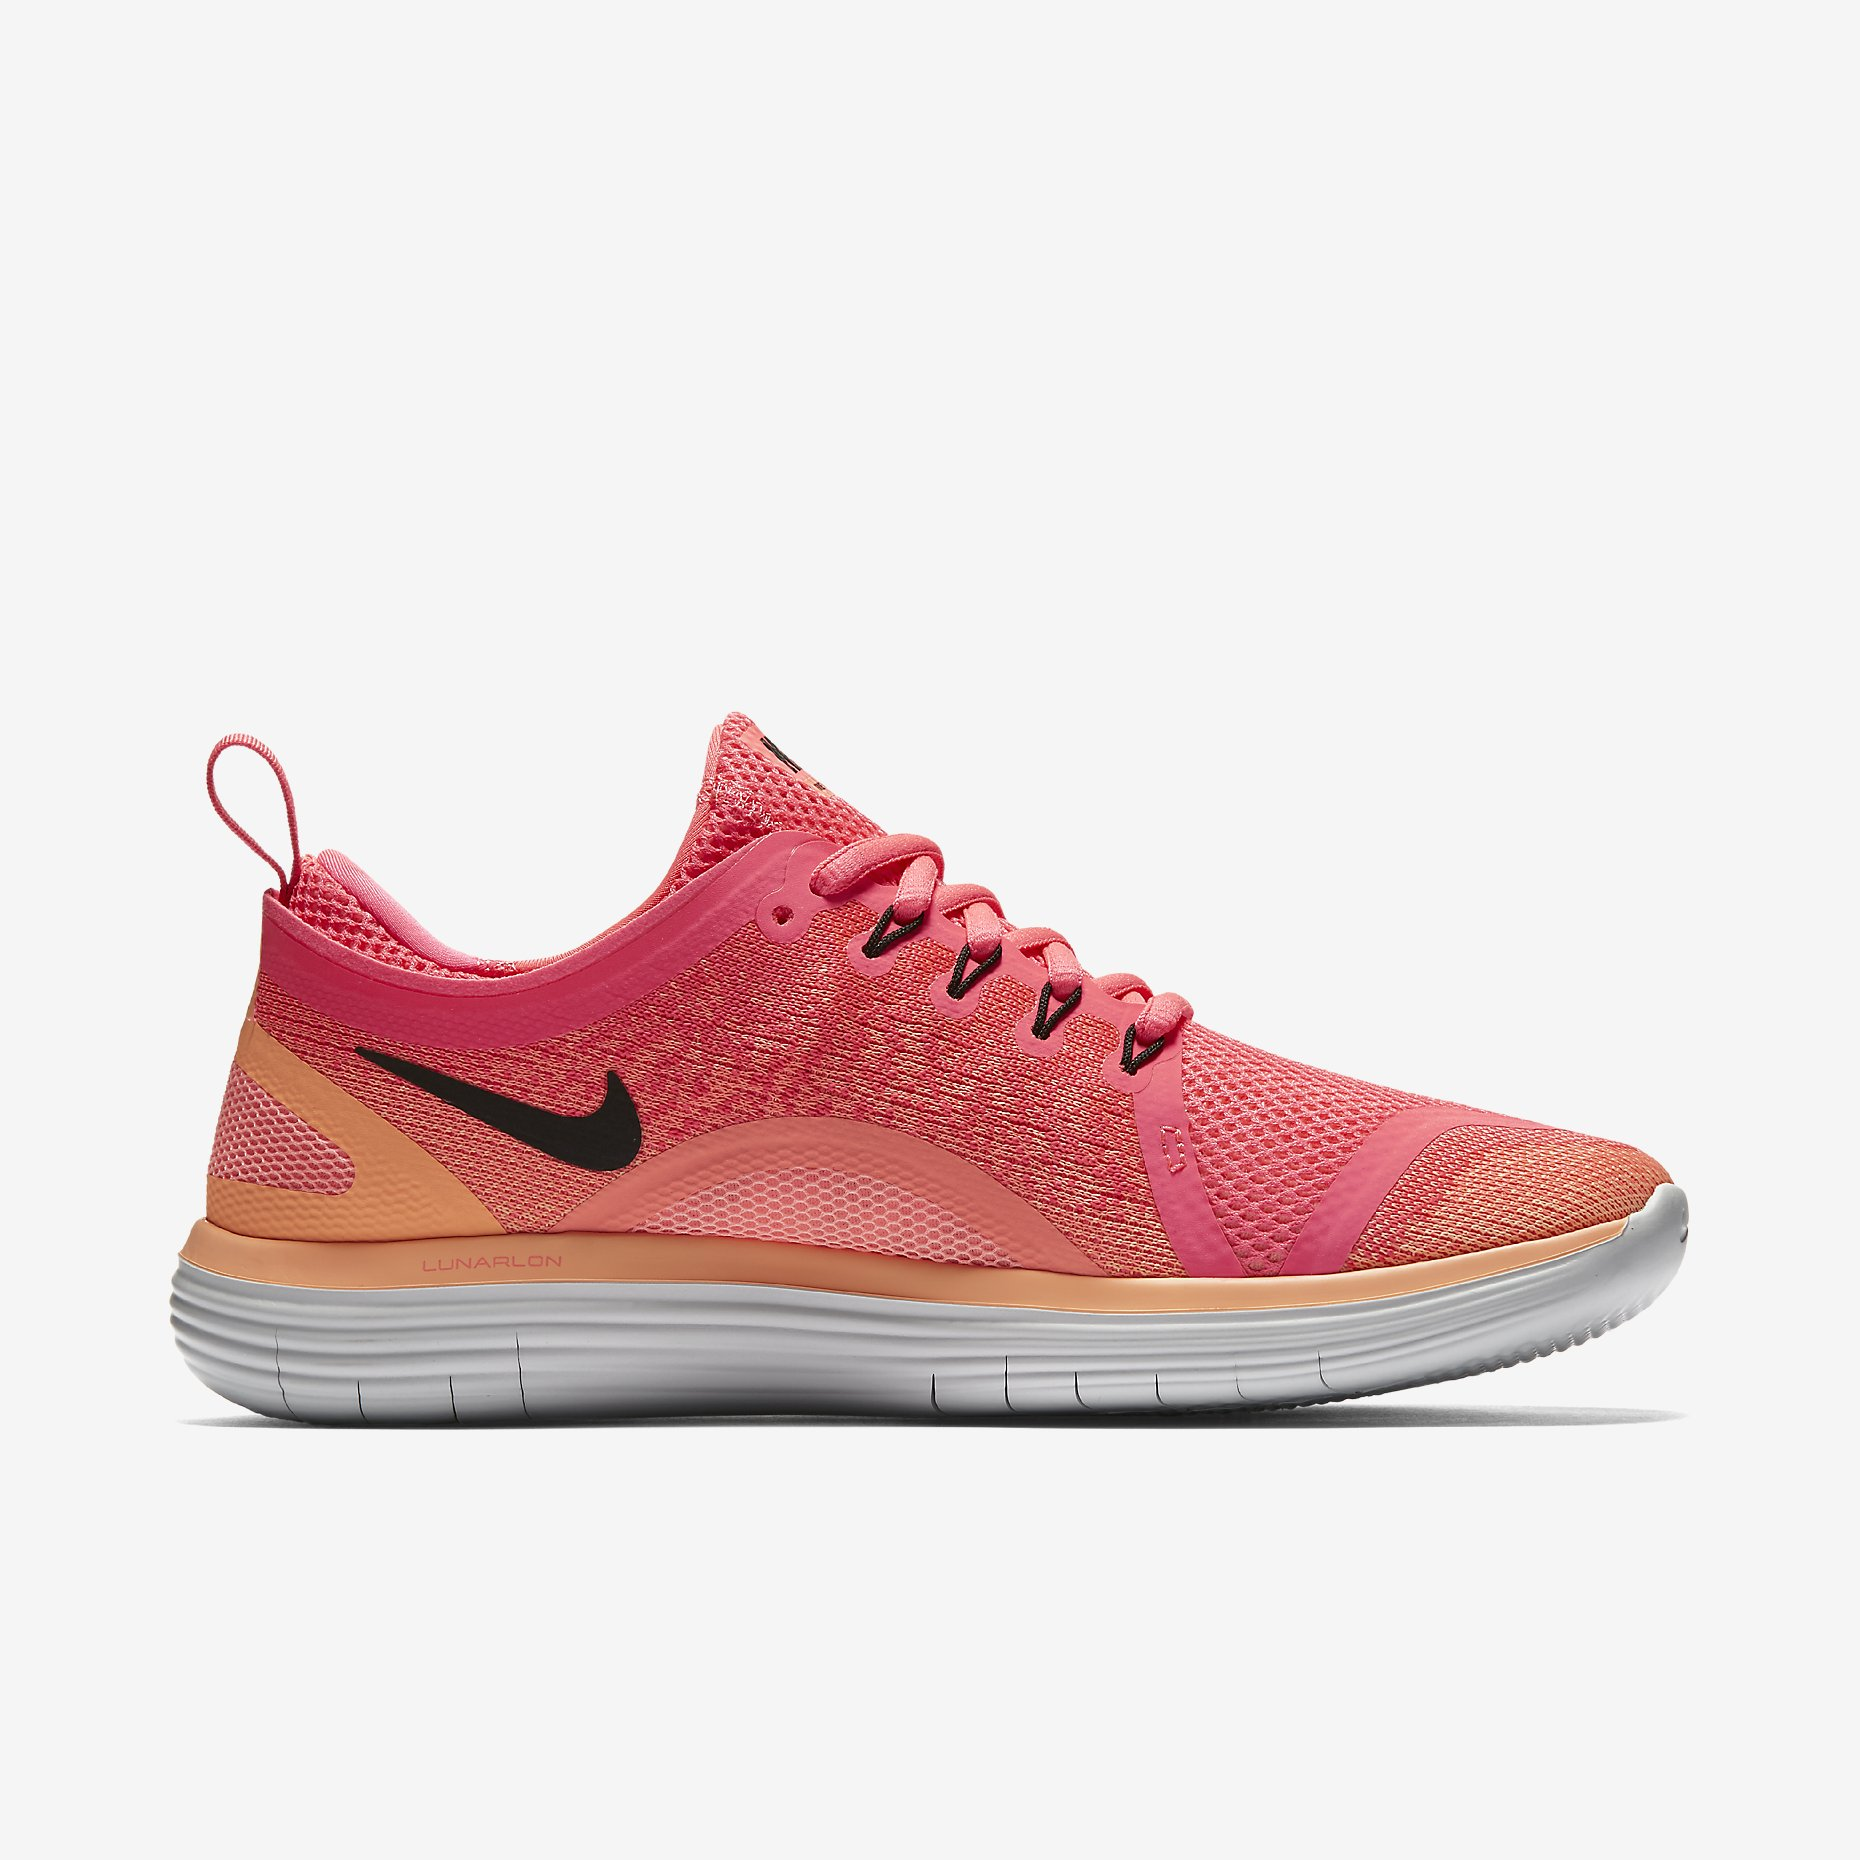 34b4fd302a3 ... Nike Free RN Distance 2 Womens Running Shoes .